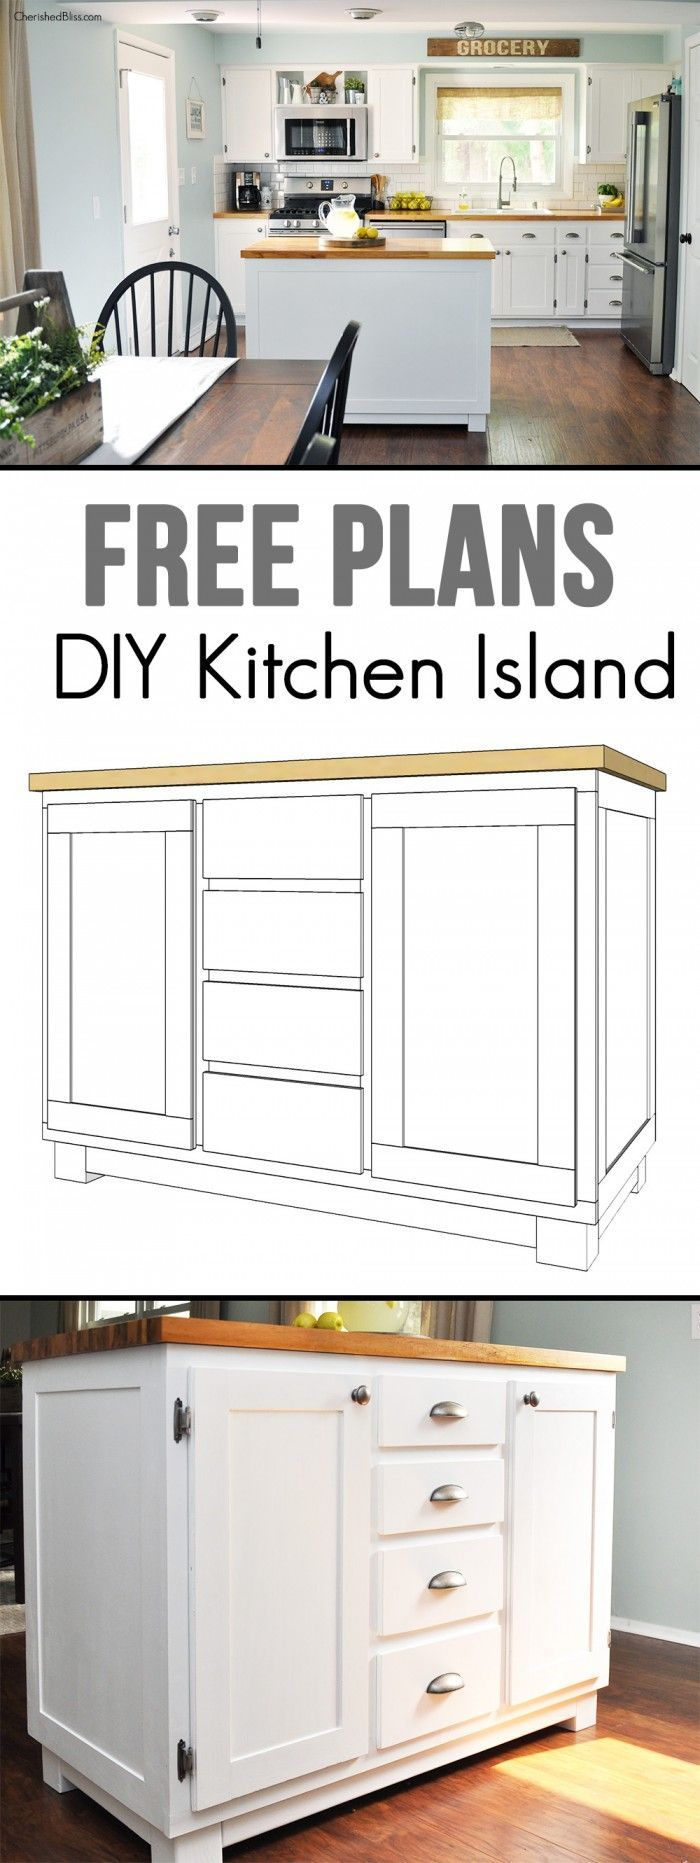 Easy Kitchen Renovation 17 Best Images About Kitchens On Pinterest The Cabinet How To